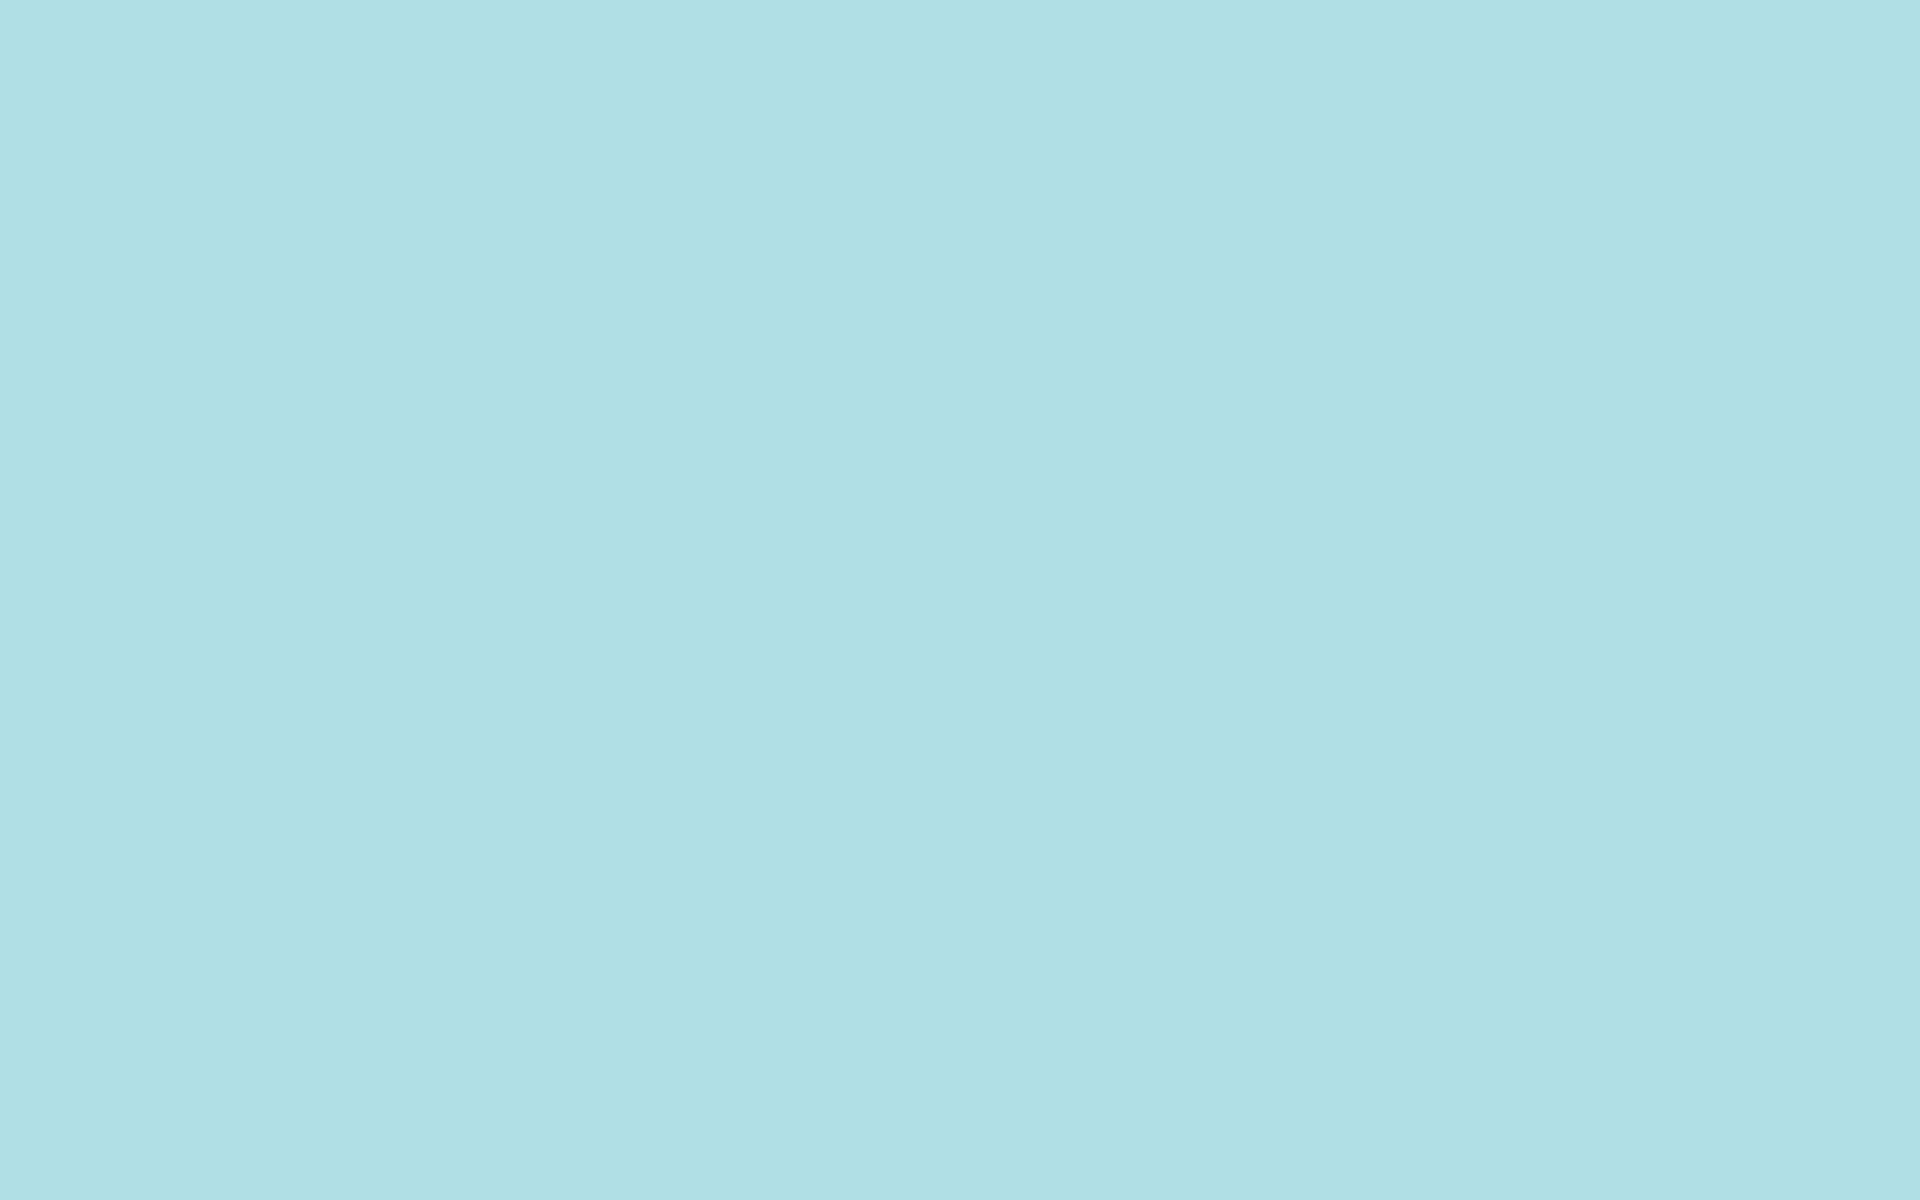 1920x1200 Powder Blue Web Solid Color Background